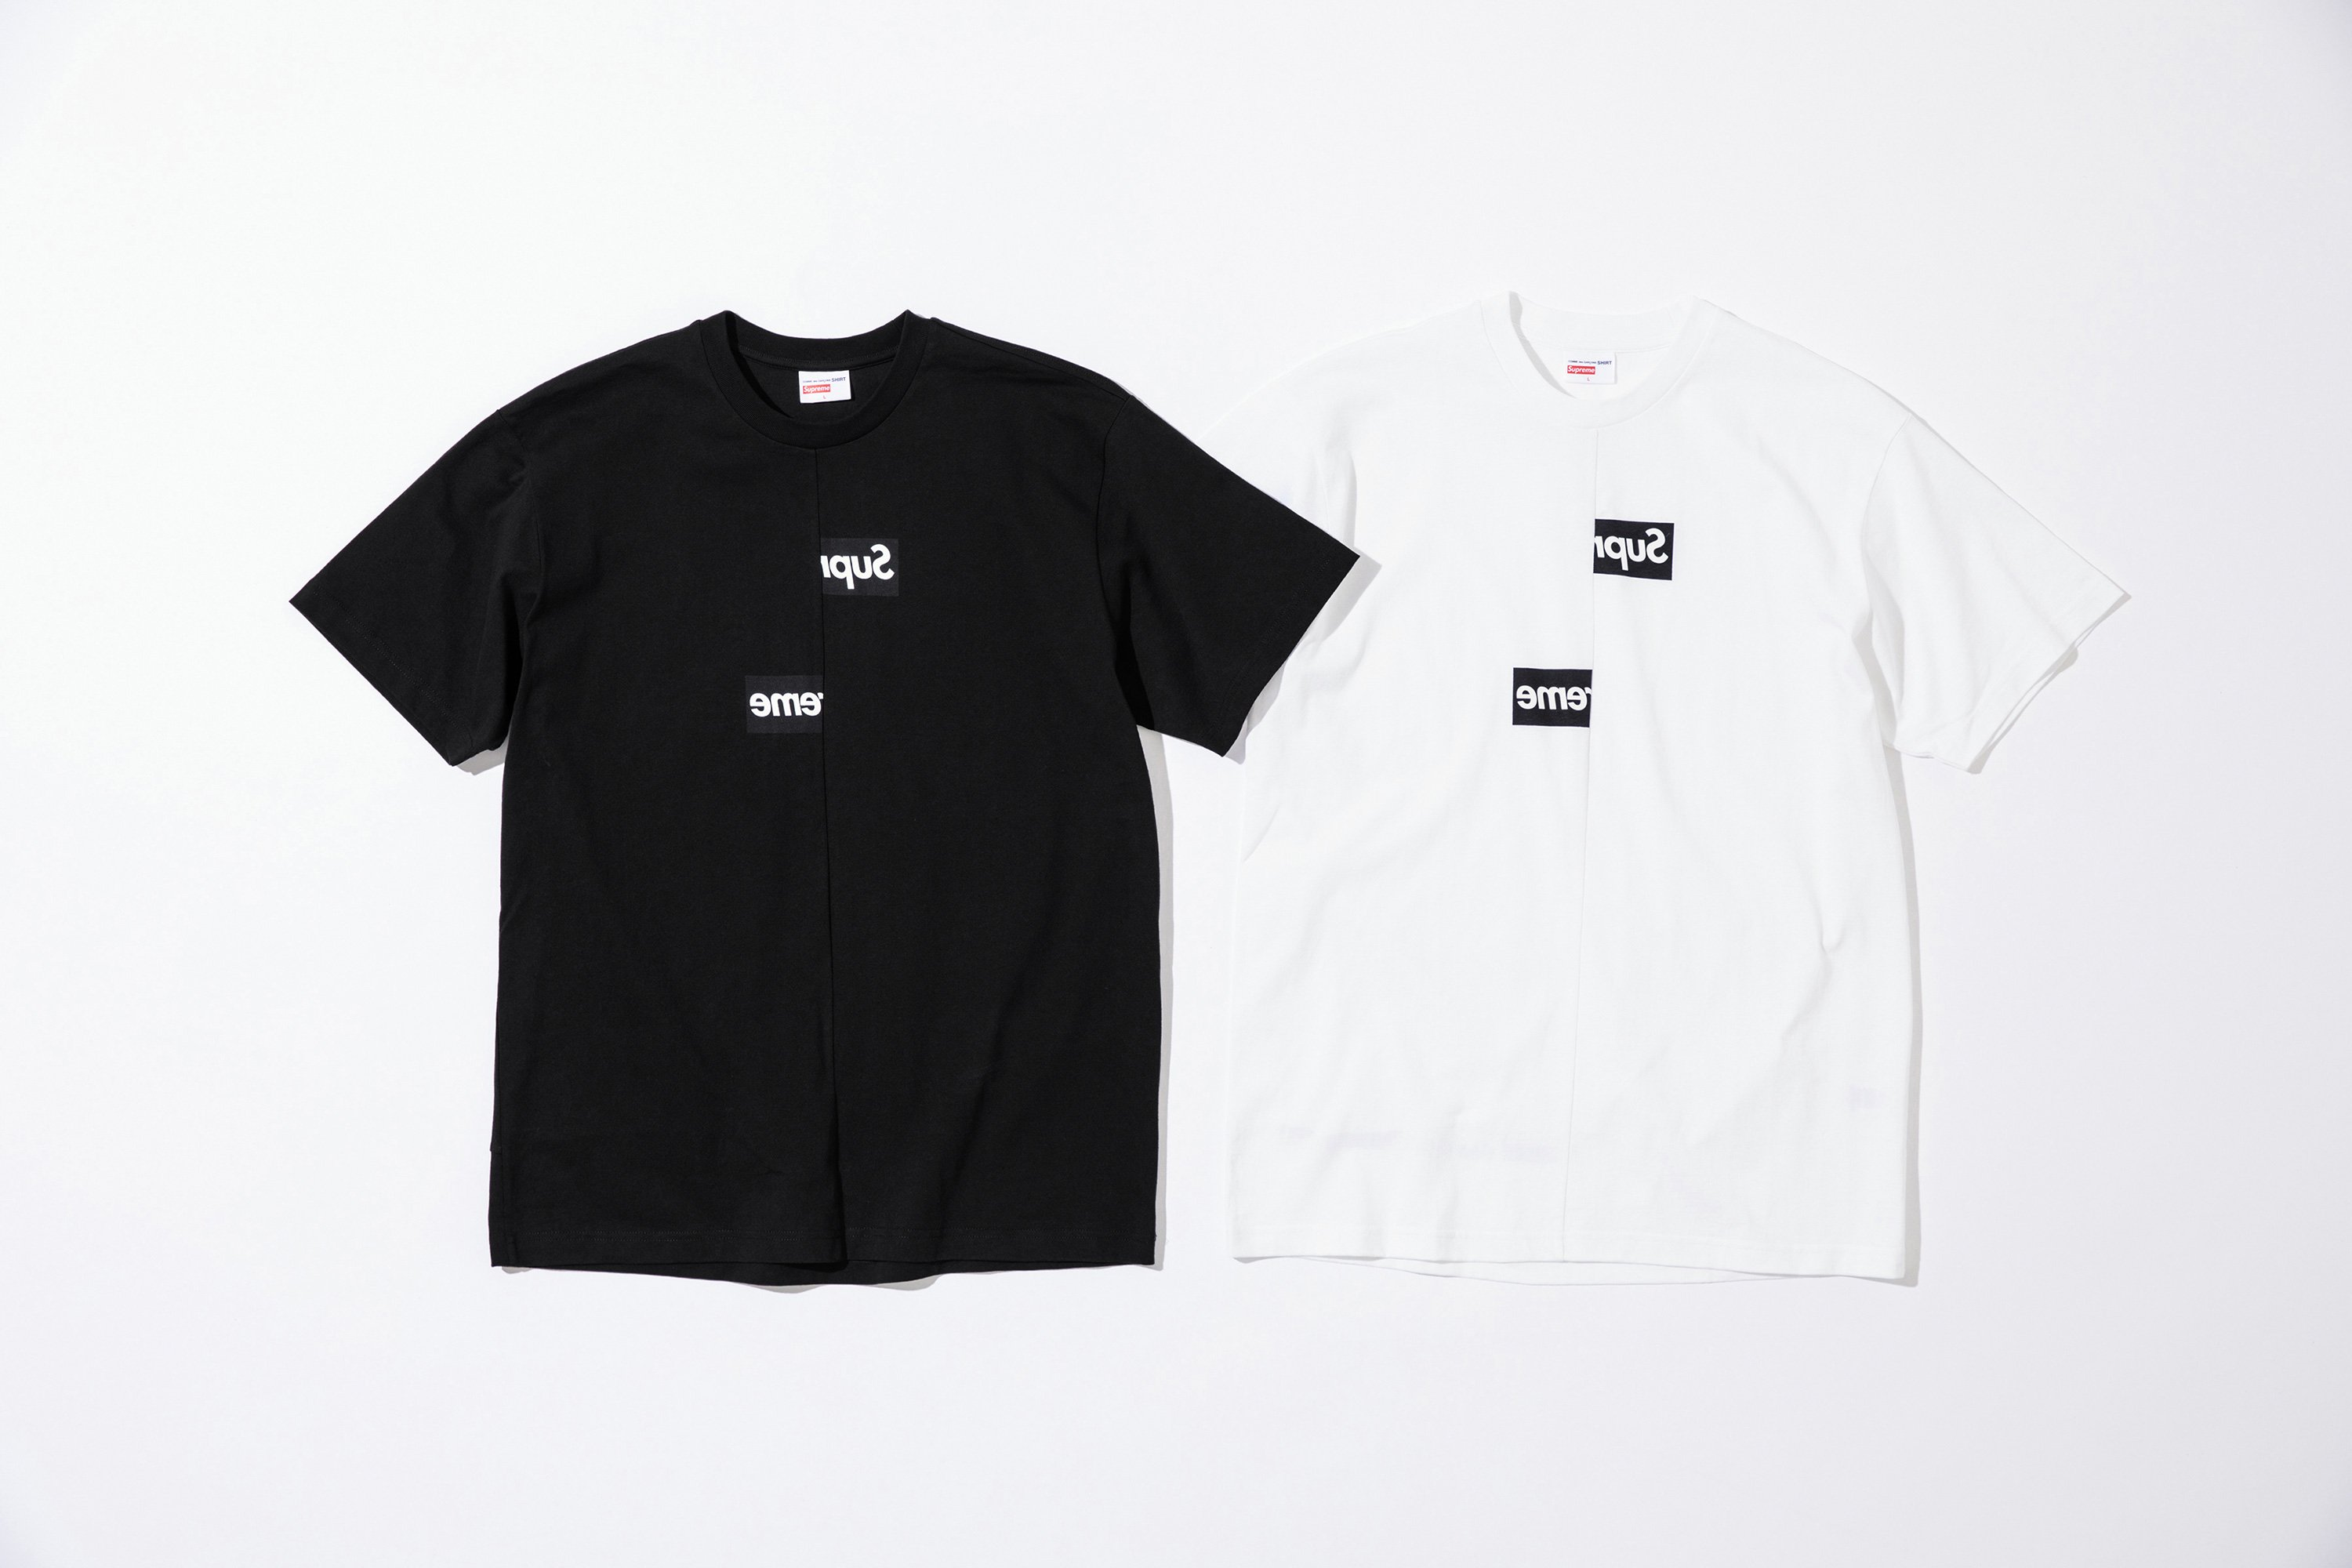 supreme-comme-des-garcons-shirt-split-box-logo-tee-2018aw-collaboration-release-20180915-week4